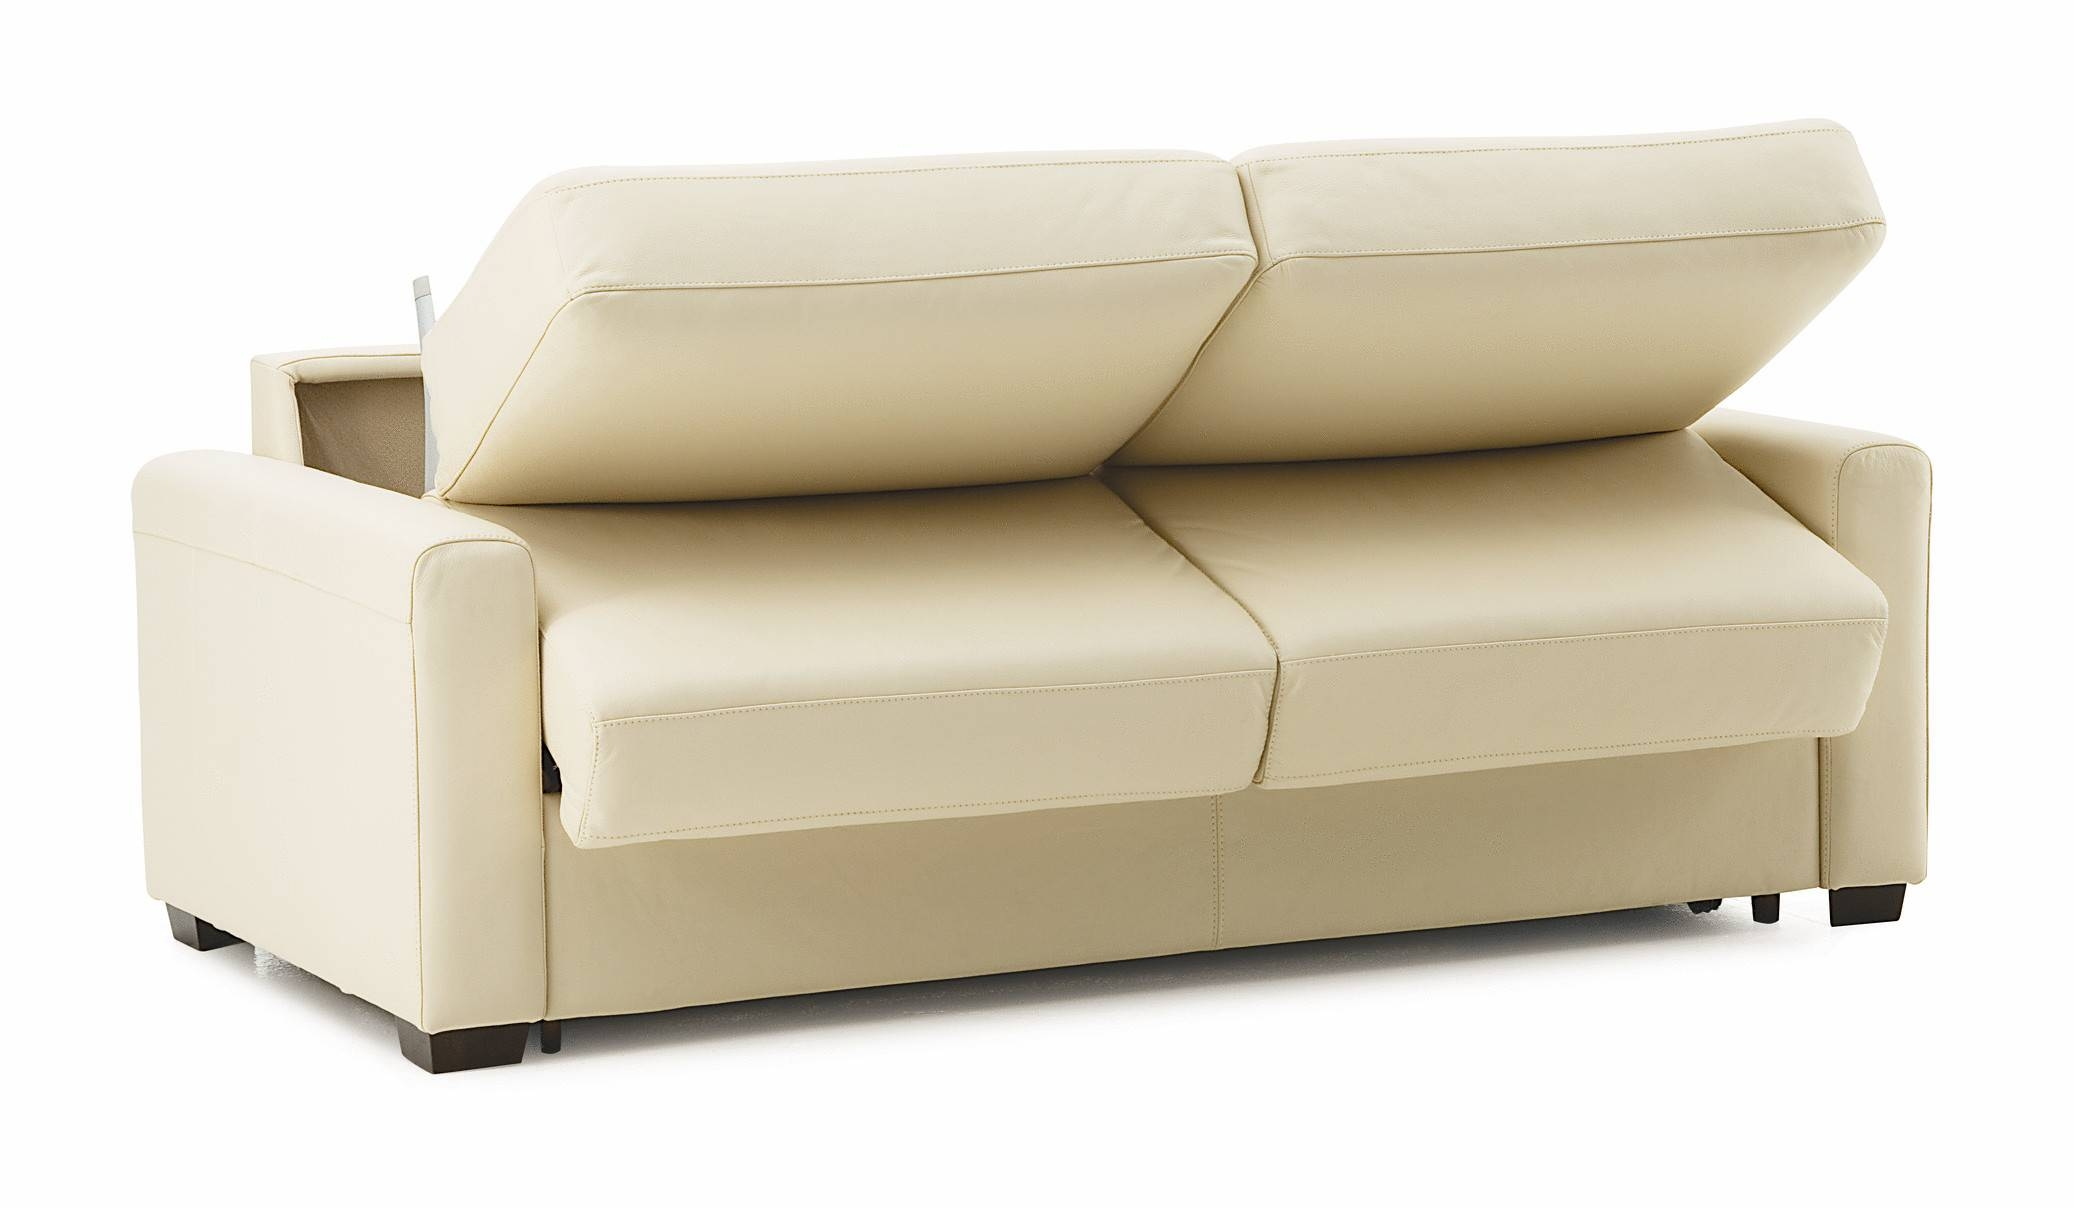 Comfortable Sofa Sleeper And Comfortable Sofa Bed › Most inside Sofa Bed Sleepers (Image 3 of 30)